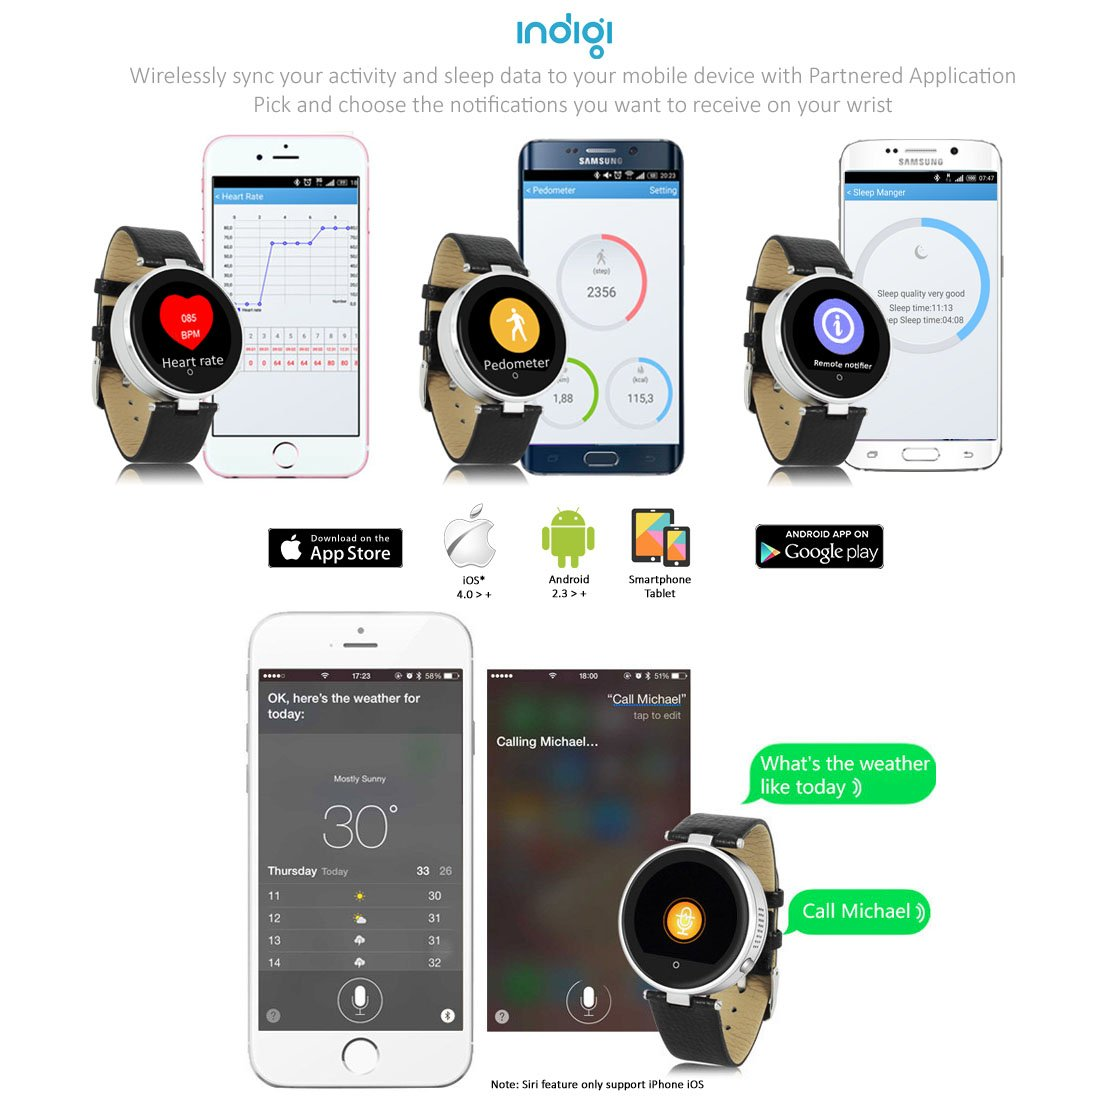 Amazon.com: Indigi Smart Bluetooth Watch Heart Rate Monitor Fitness Tracker For iPhone iOS Android: Cell Phones & Accessories